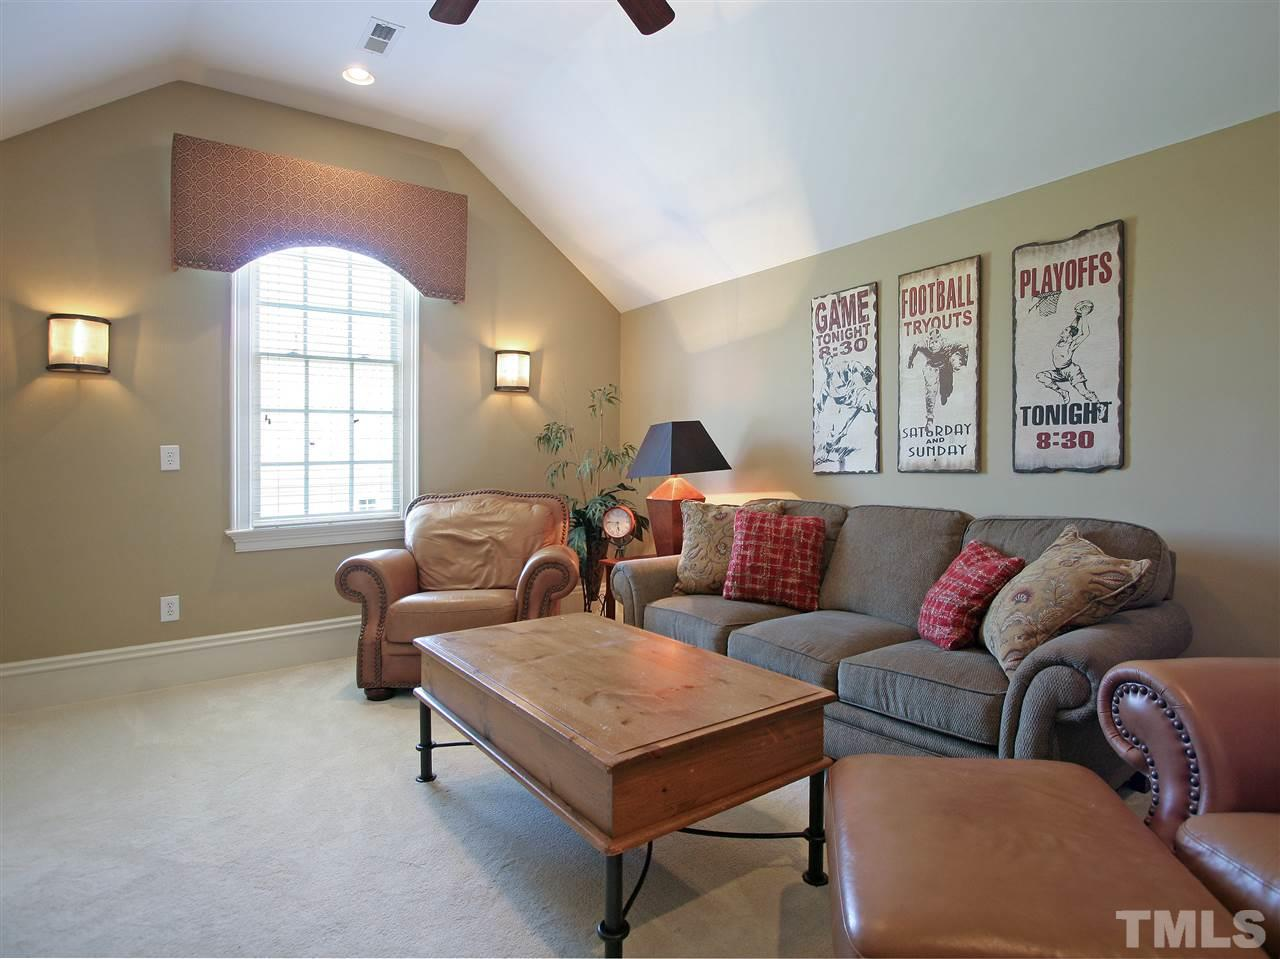 This is one of two bonus rooms in the home. This one, at the top of the second staircase, is the smaller, more intimate, of the two. Watch TV, read, or enjoy conversation with family and friends.